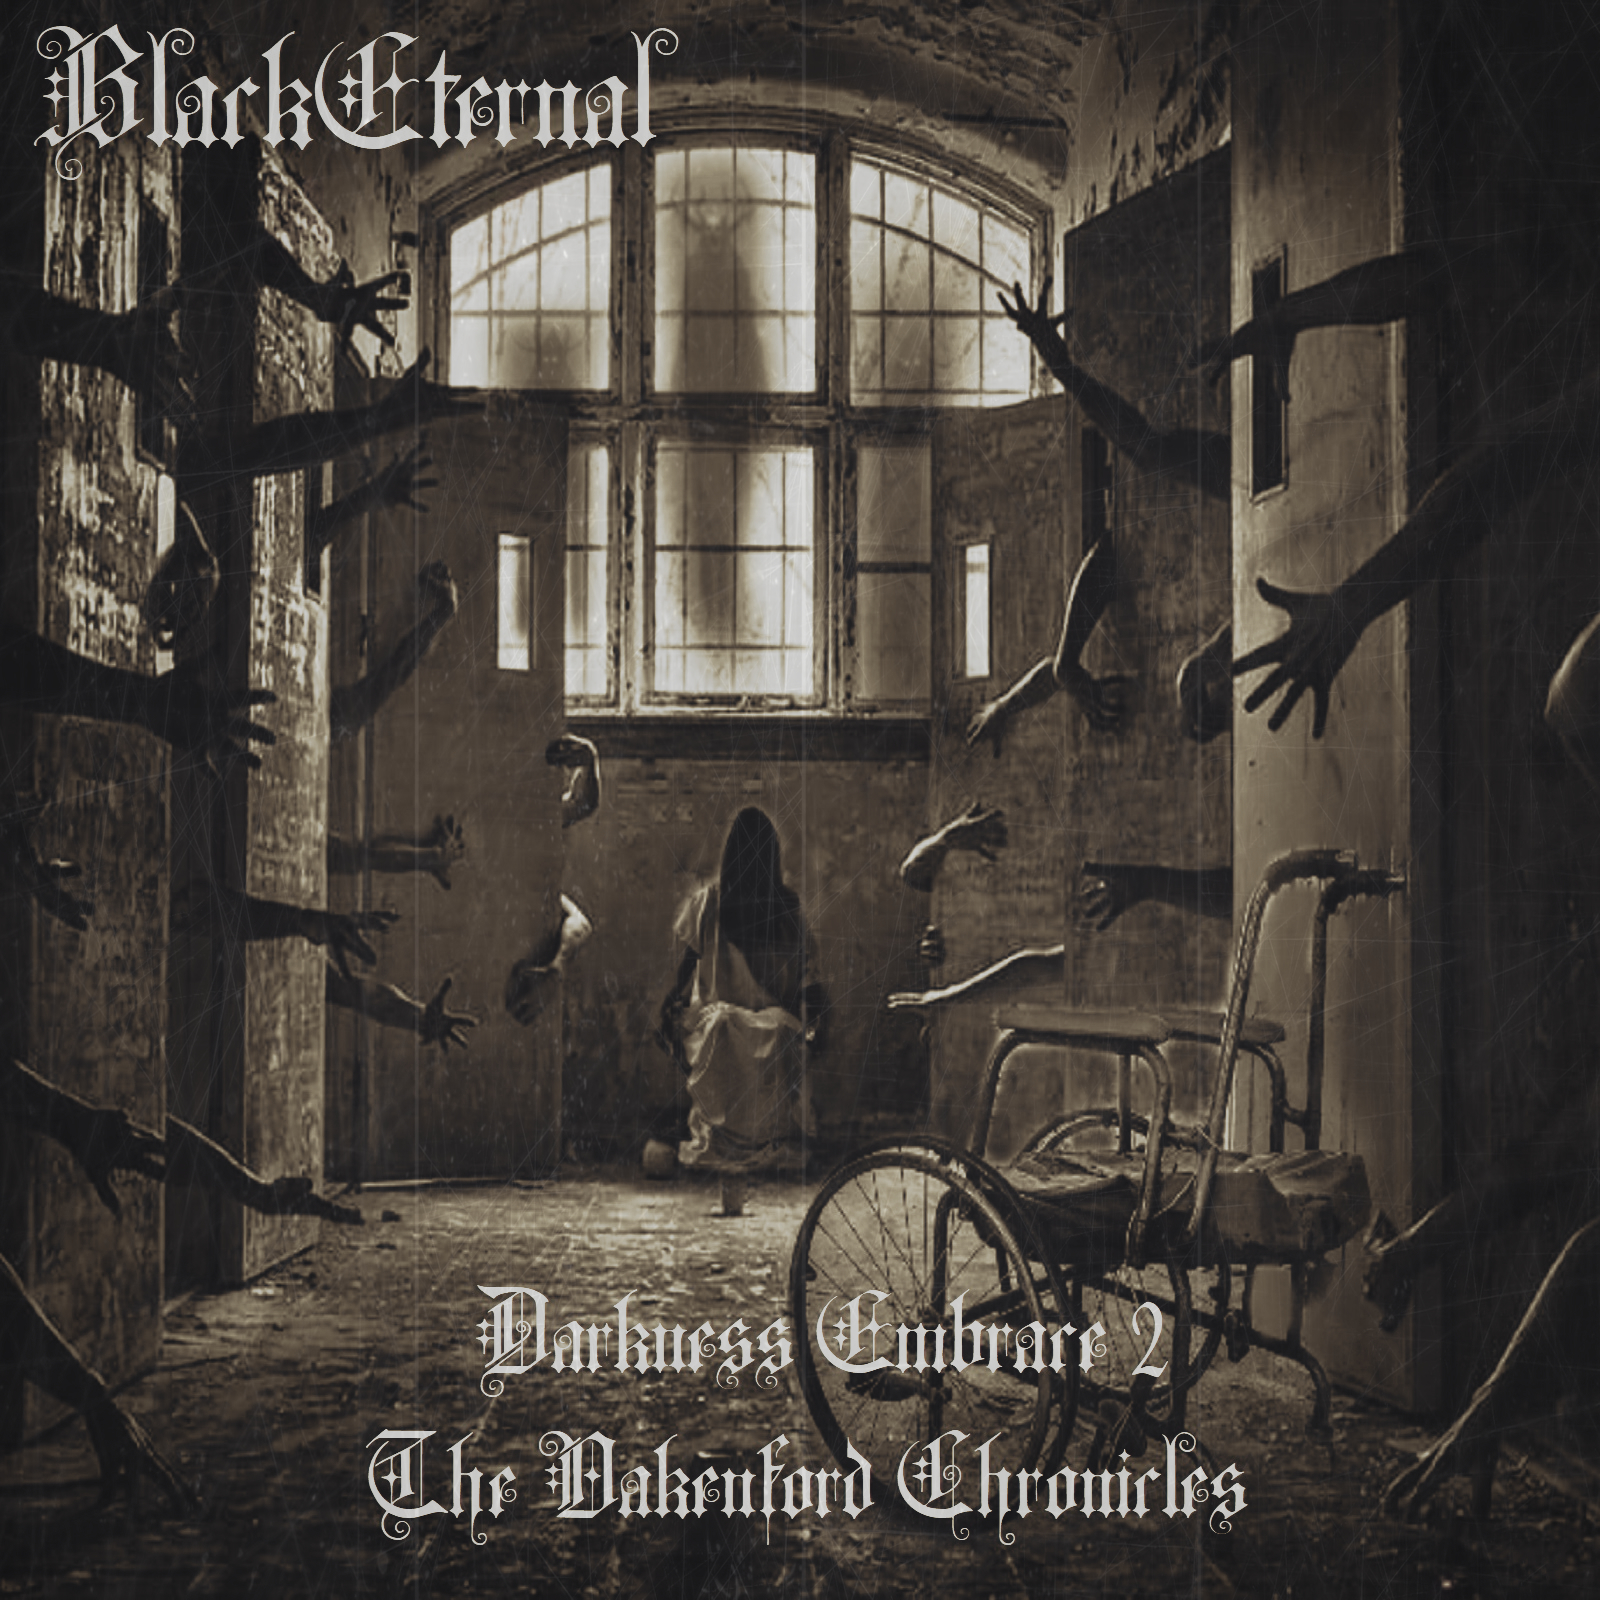 Review: Black Eternal – Darkness Embrace II / The Oakenford Chronicles